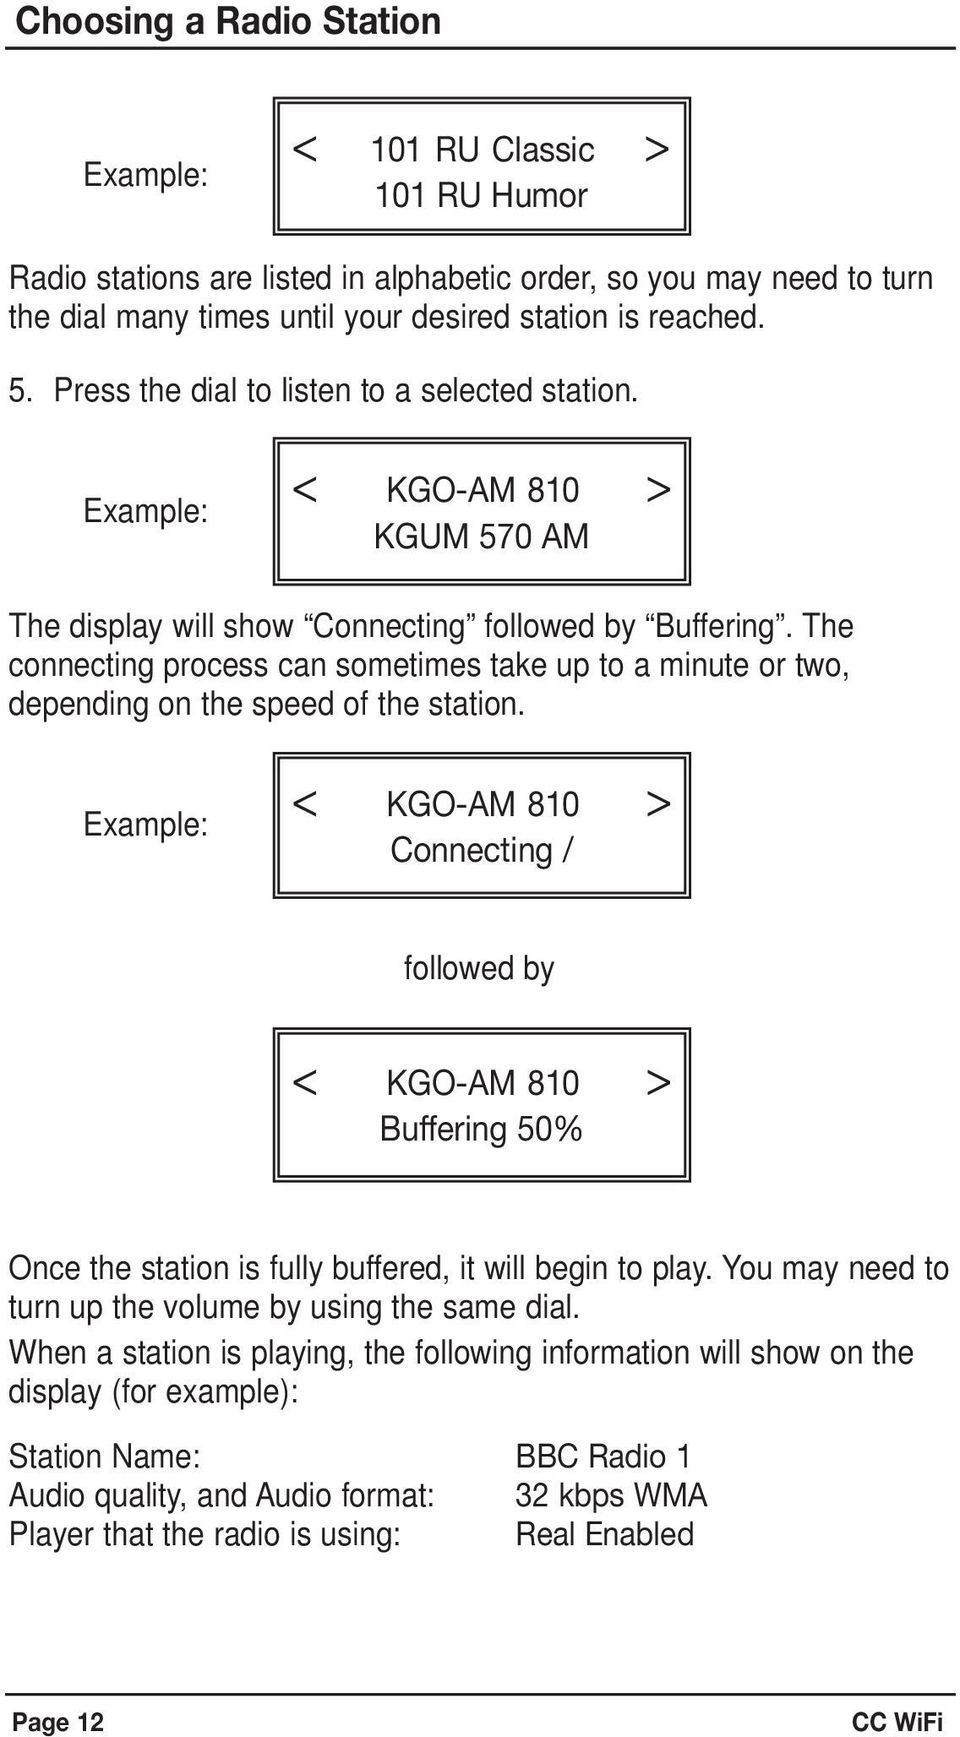 The connecting process can sometimes take up to a minute or two, depending on the speed of the station.